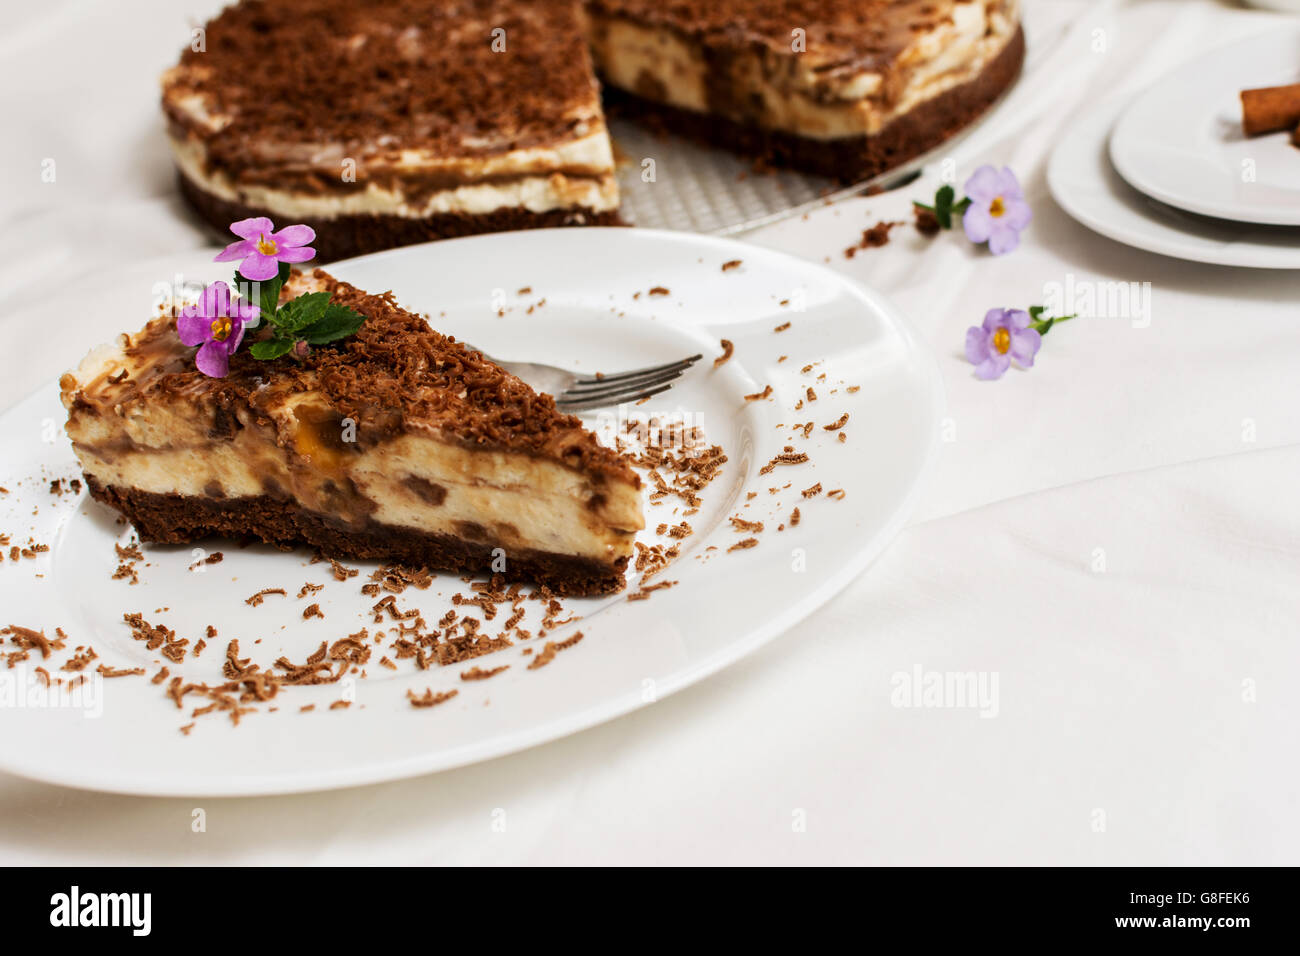 Traditional caramel cheesecake with chocolate and flower on white plate - Stock Image